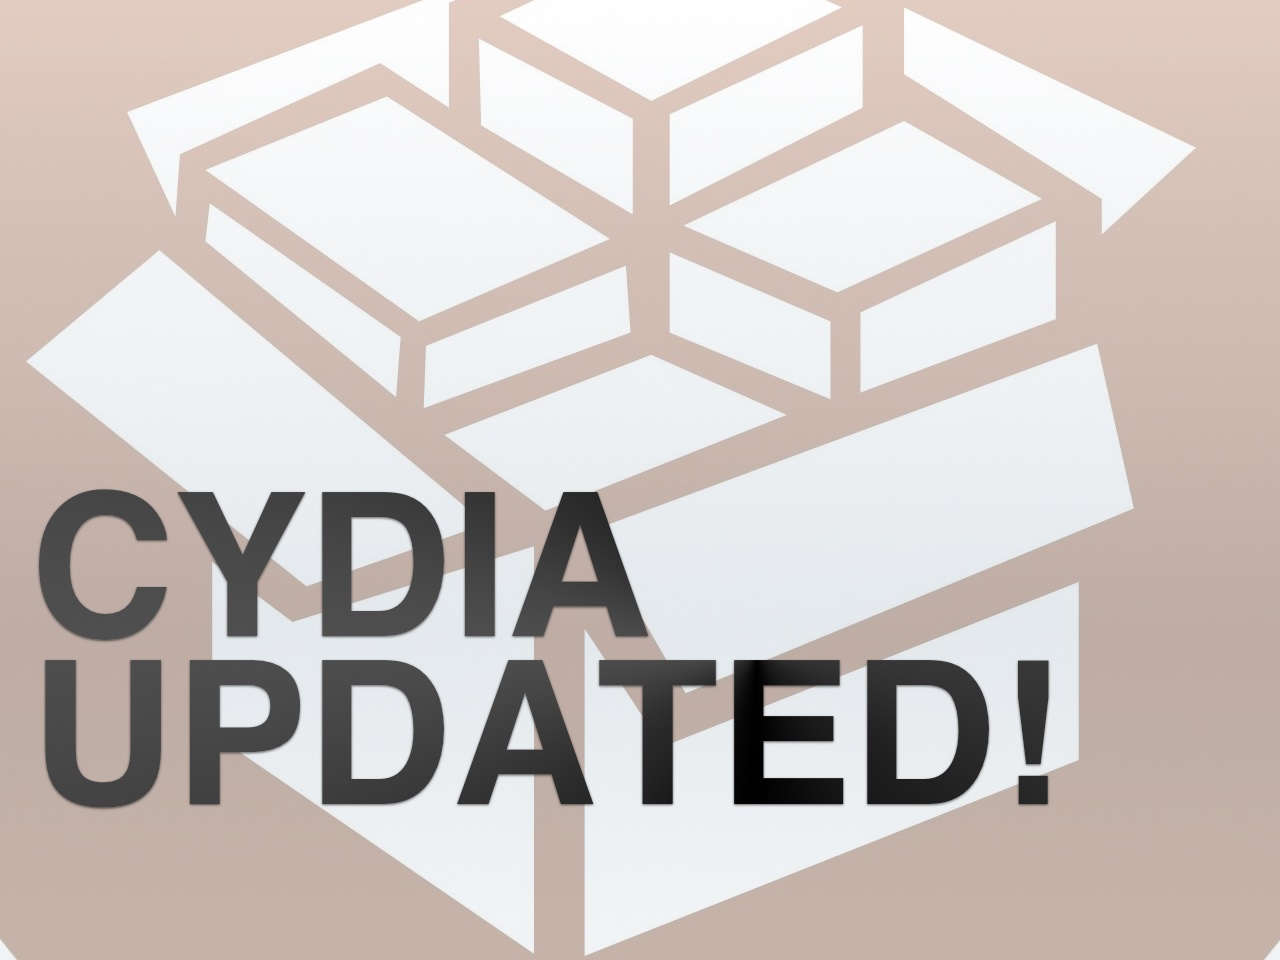 Cydia Updated